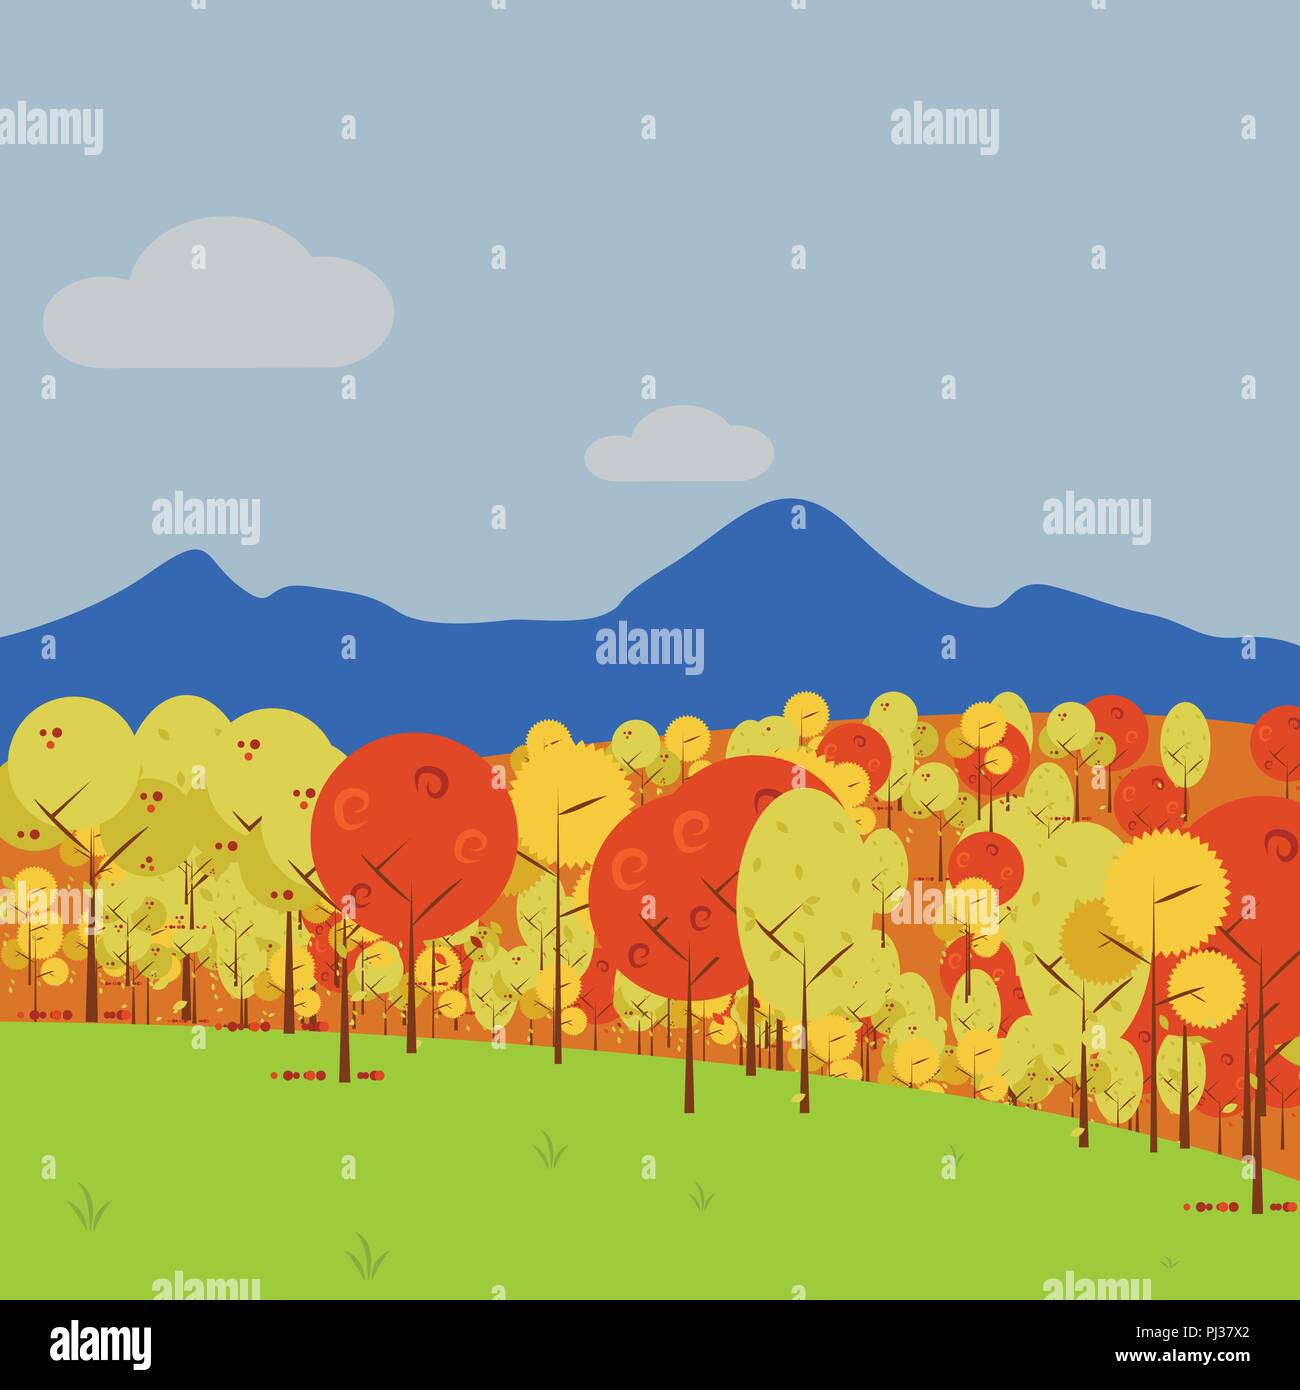 simple mountain view forest vector art autumn scenery illustration